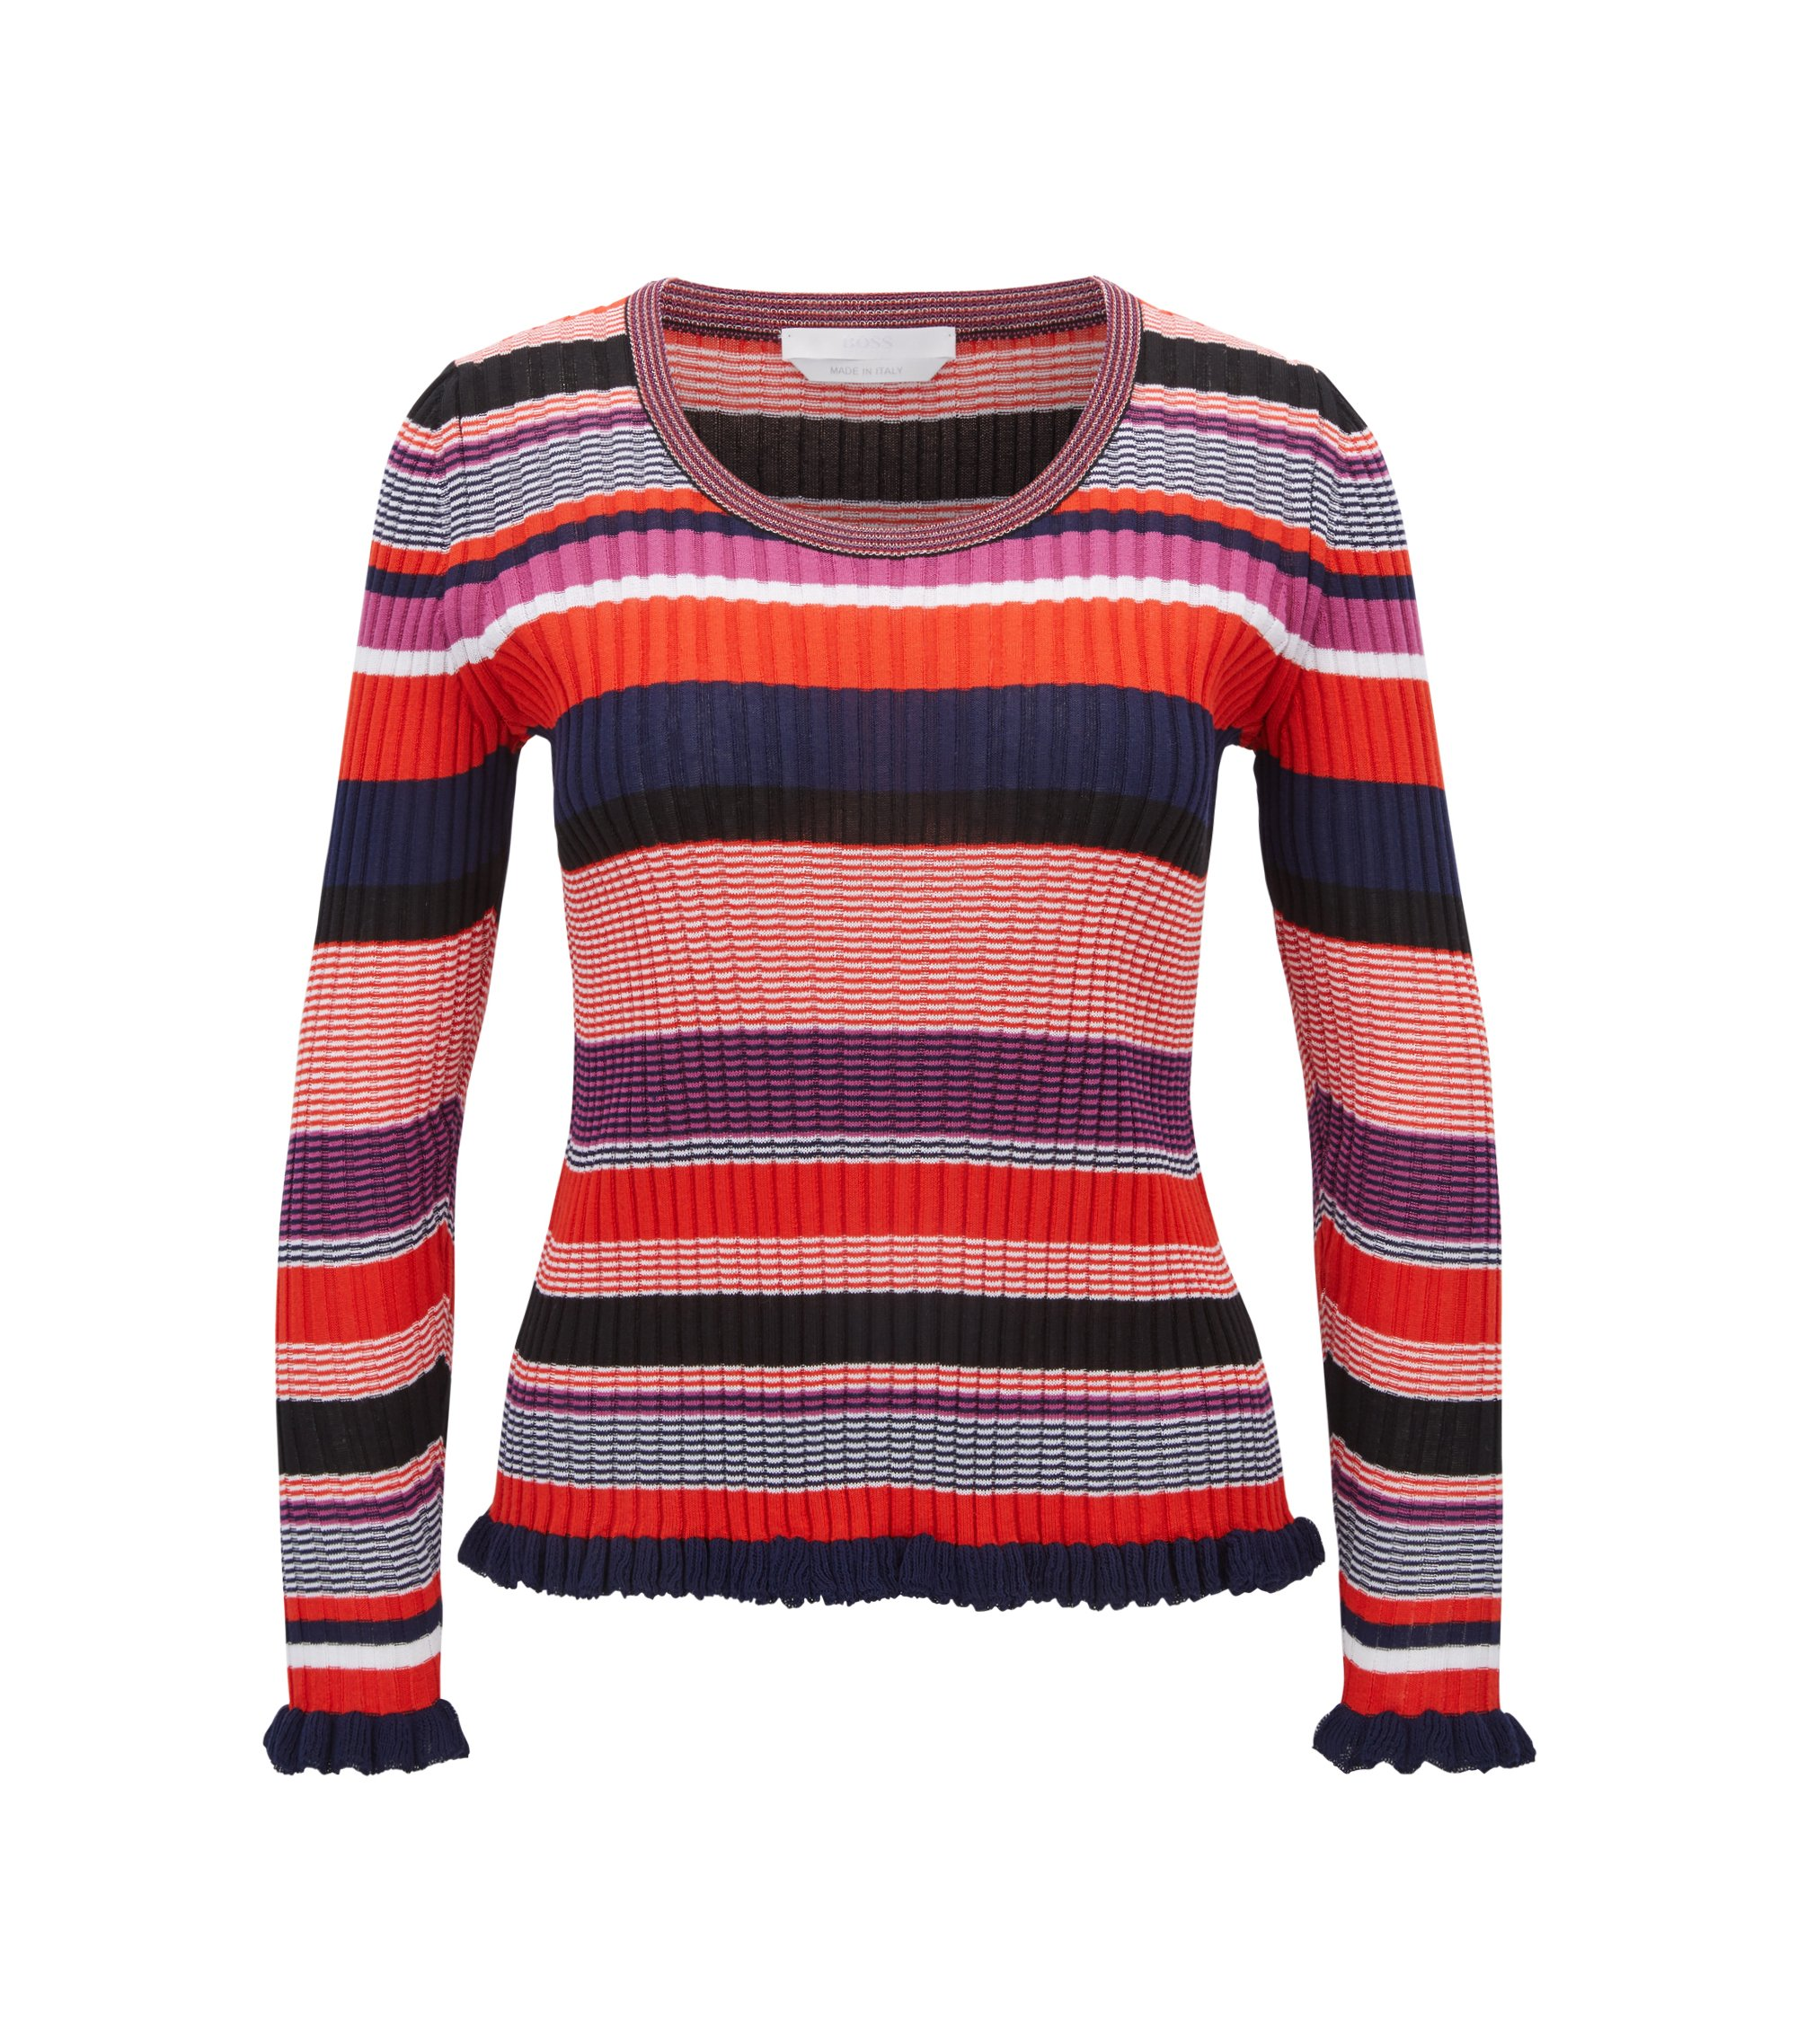 Striped sweater in a cotton blend, Patterned